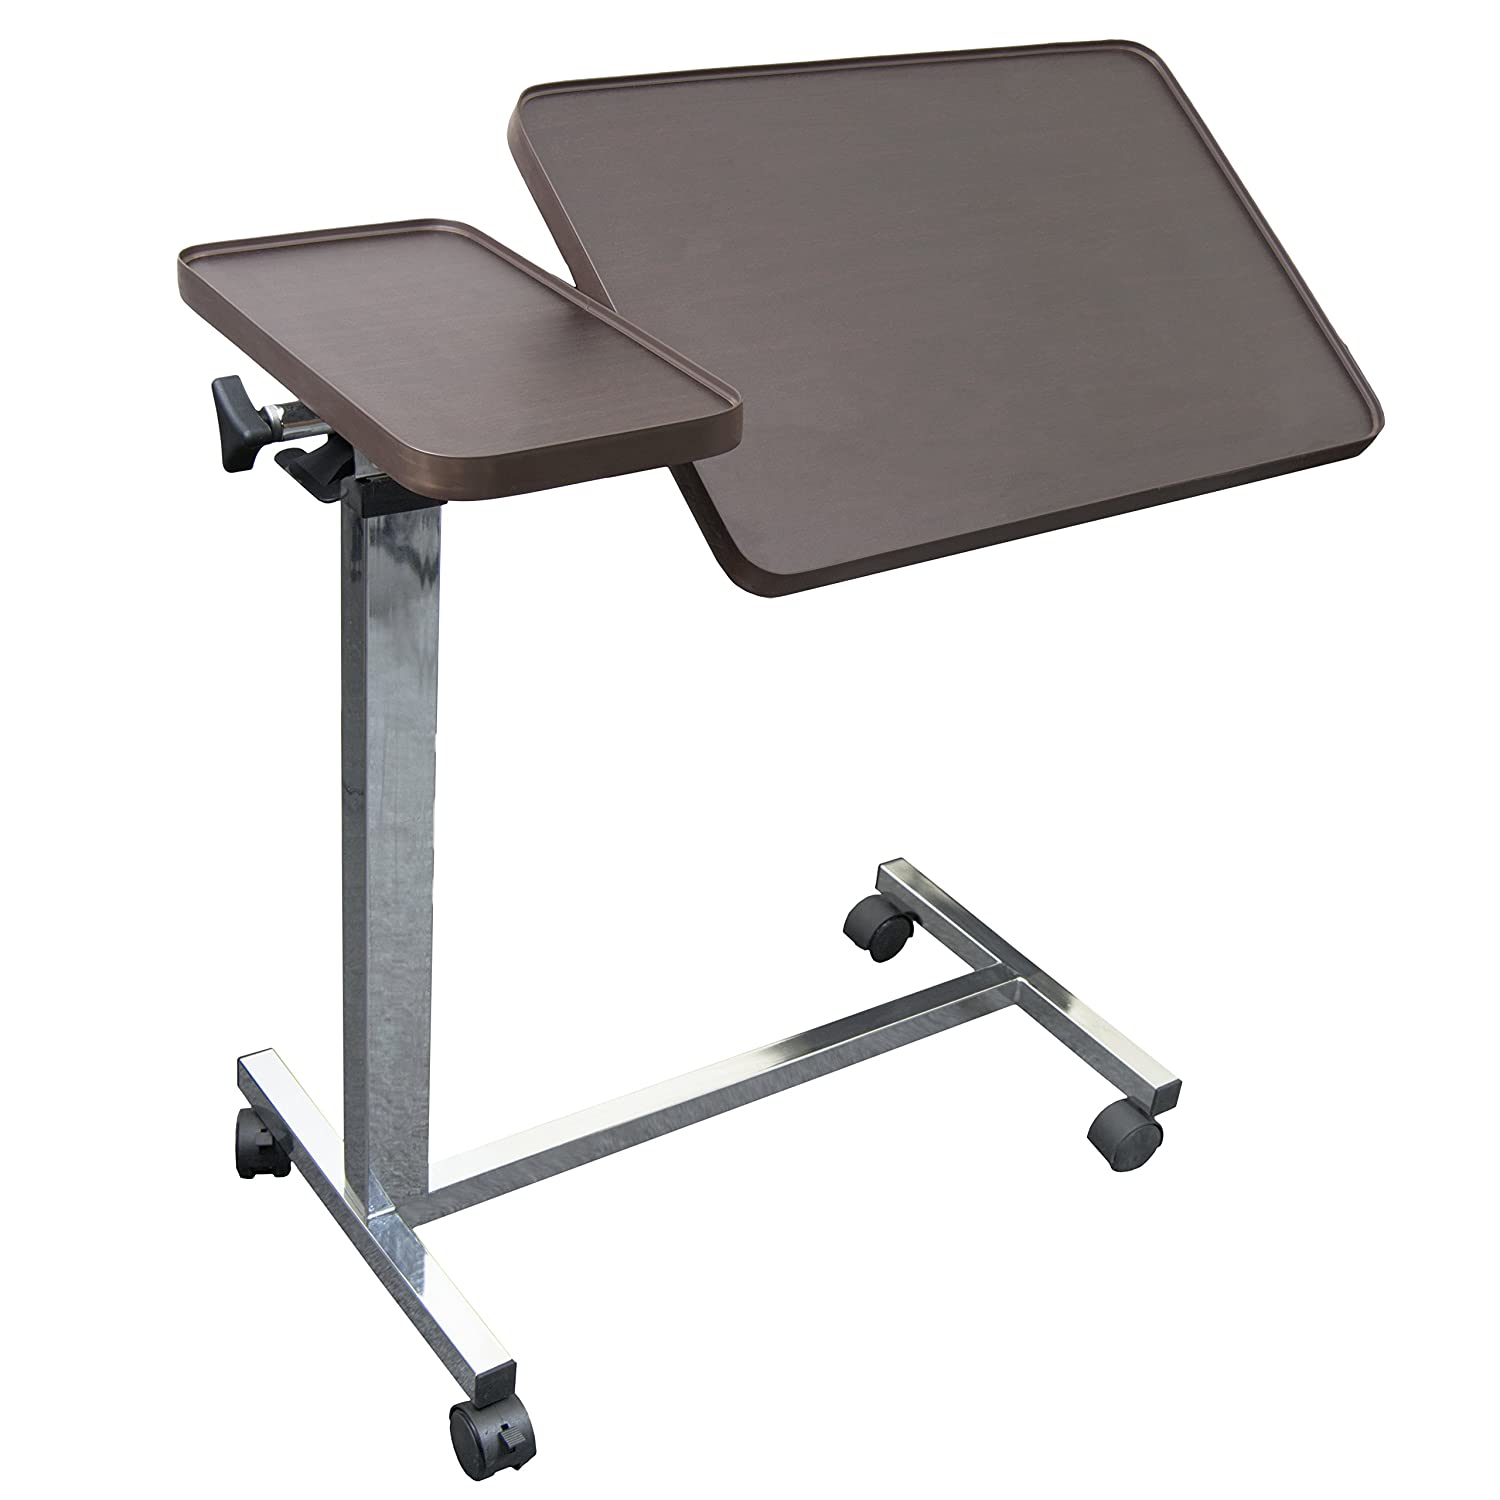 Overbed table with storage - Amazon Com Eva Medical Deluxe Tiltable Overbed Table With One Touch Height Adjustment Feature Health Personal Care